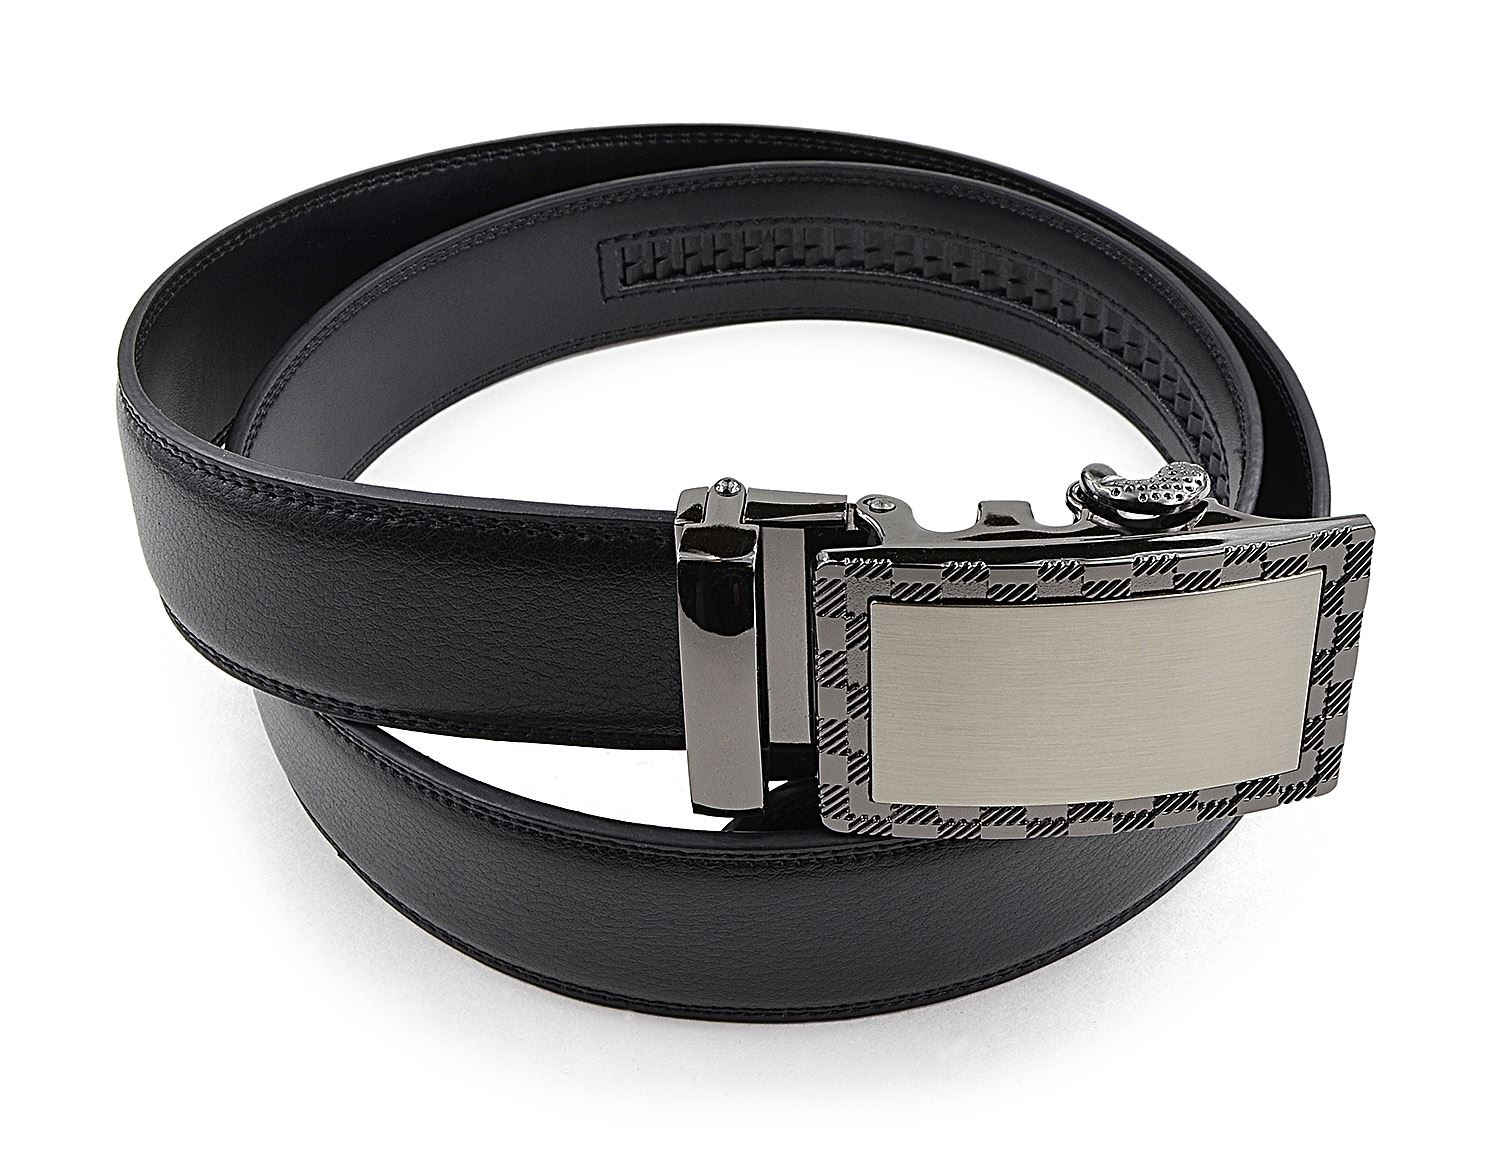 Mens Leather Belt with Automatic Slide Buckle - Black PU Leather Ratchet Belt by Moda Di Raza - Black One Size